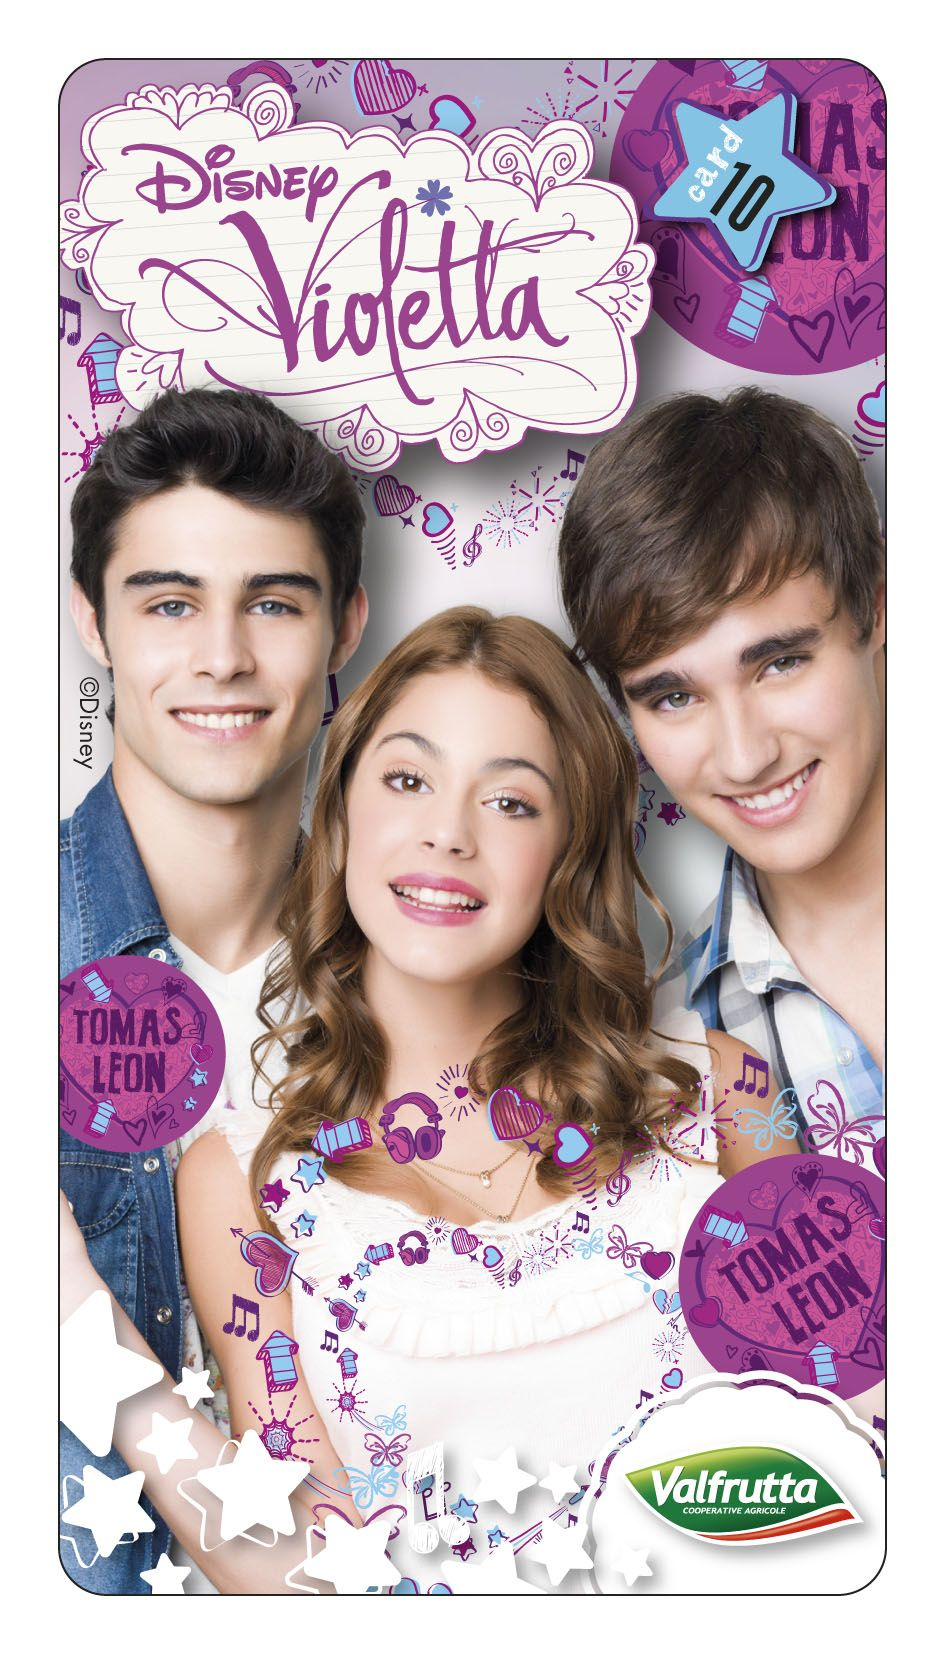 40 Violetta Ideas Disney Channel Martina Stoessel Martina